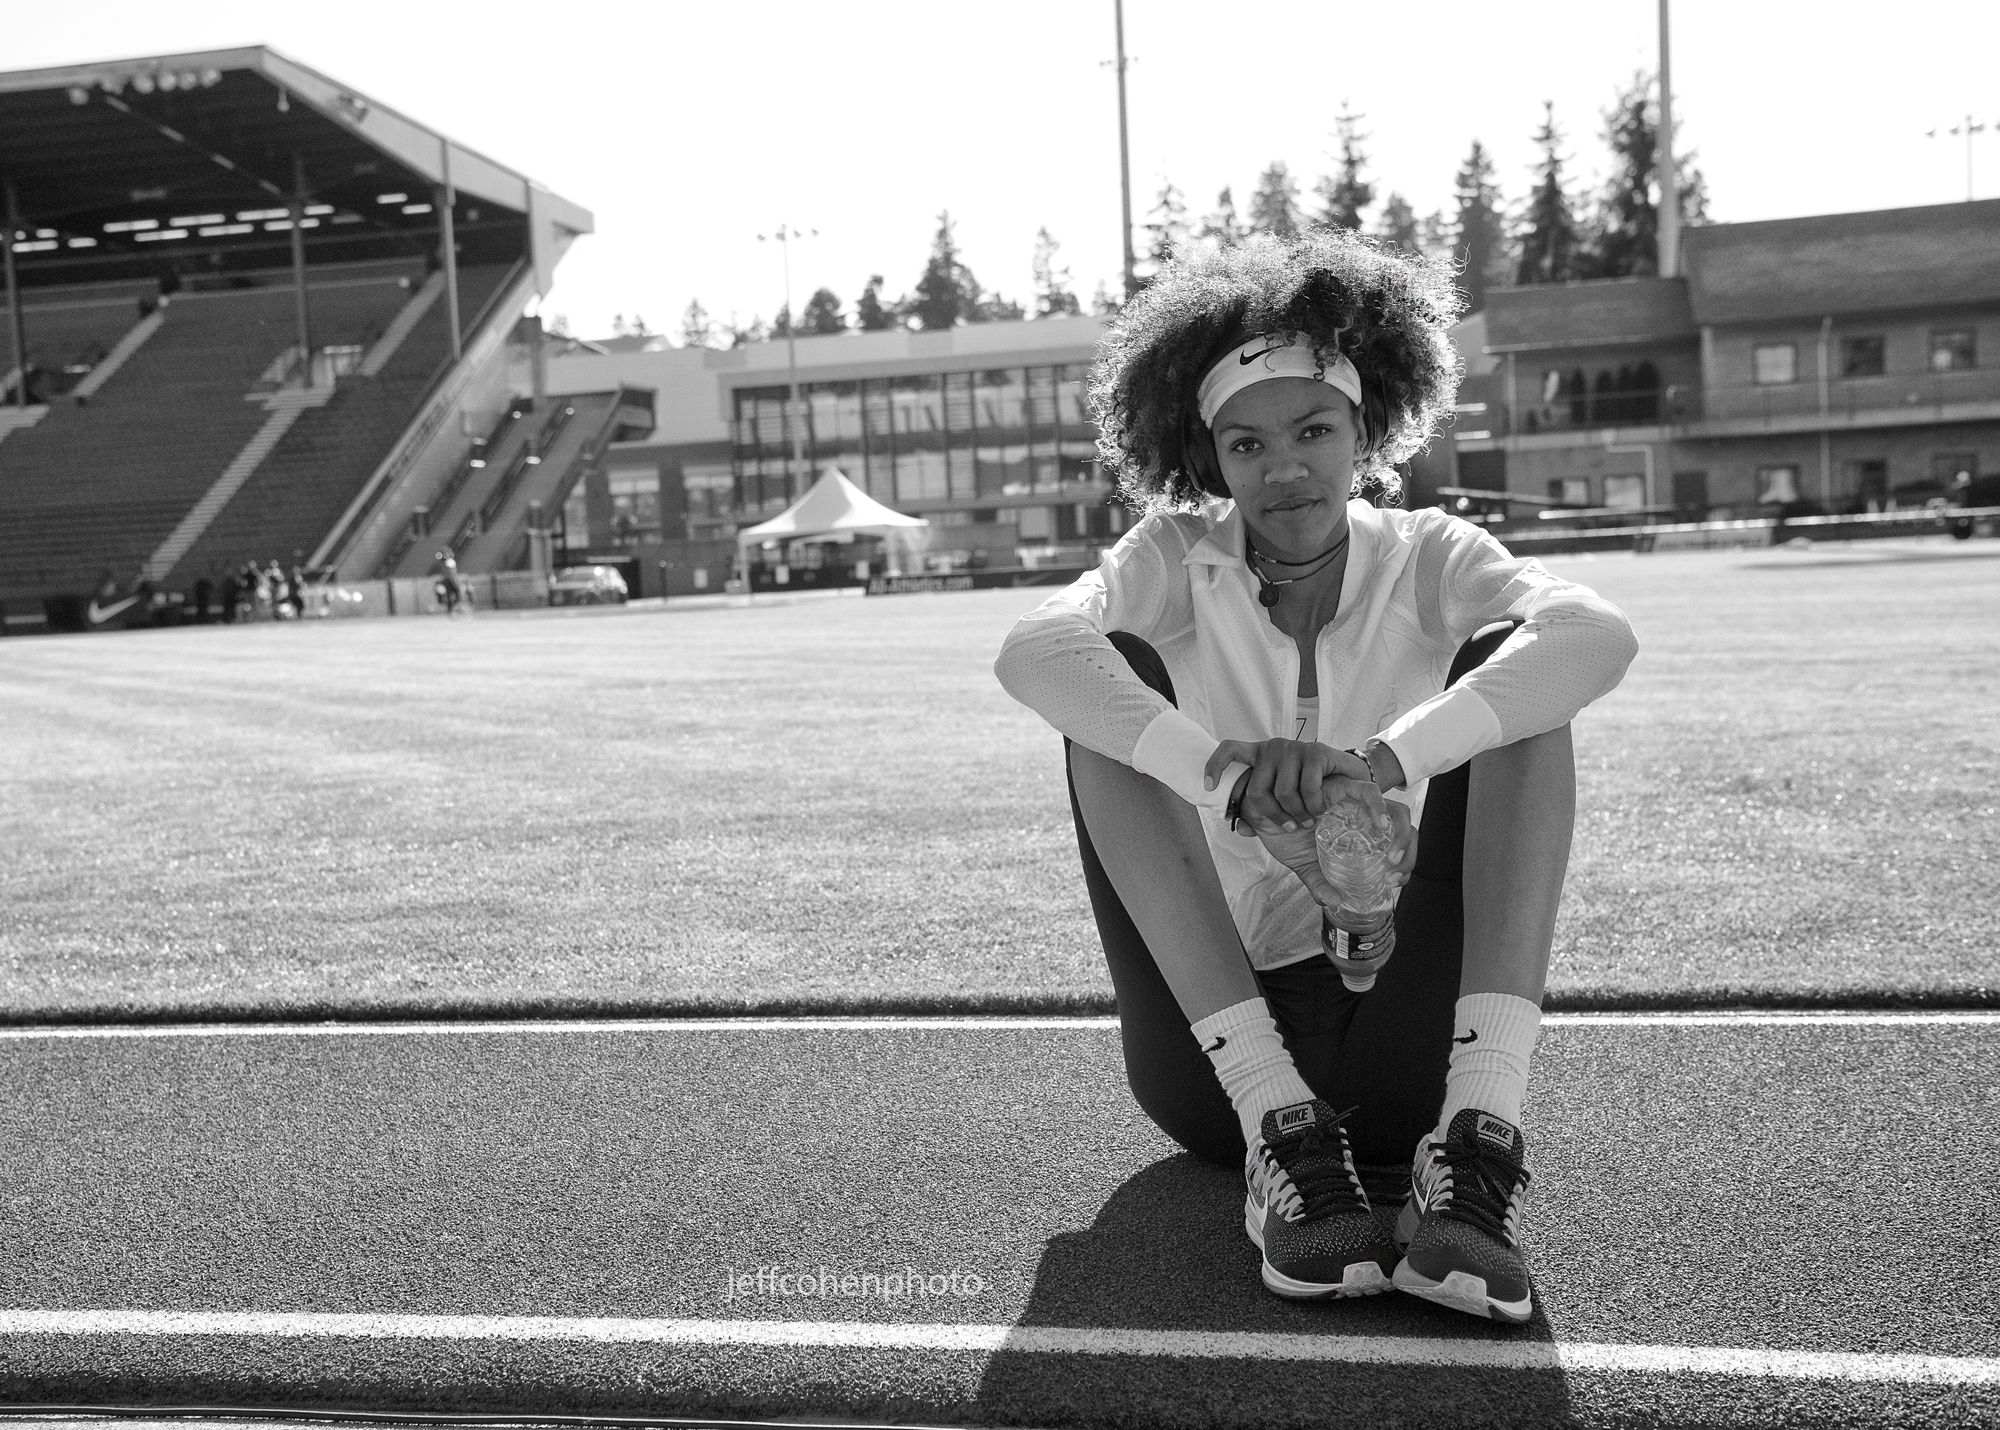 2017-Pre-Classic-pre-meet--vashti-bw--port--jeff-cohen-photo--1305-web.jpg